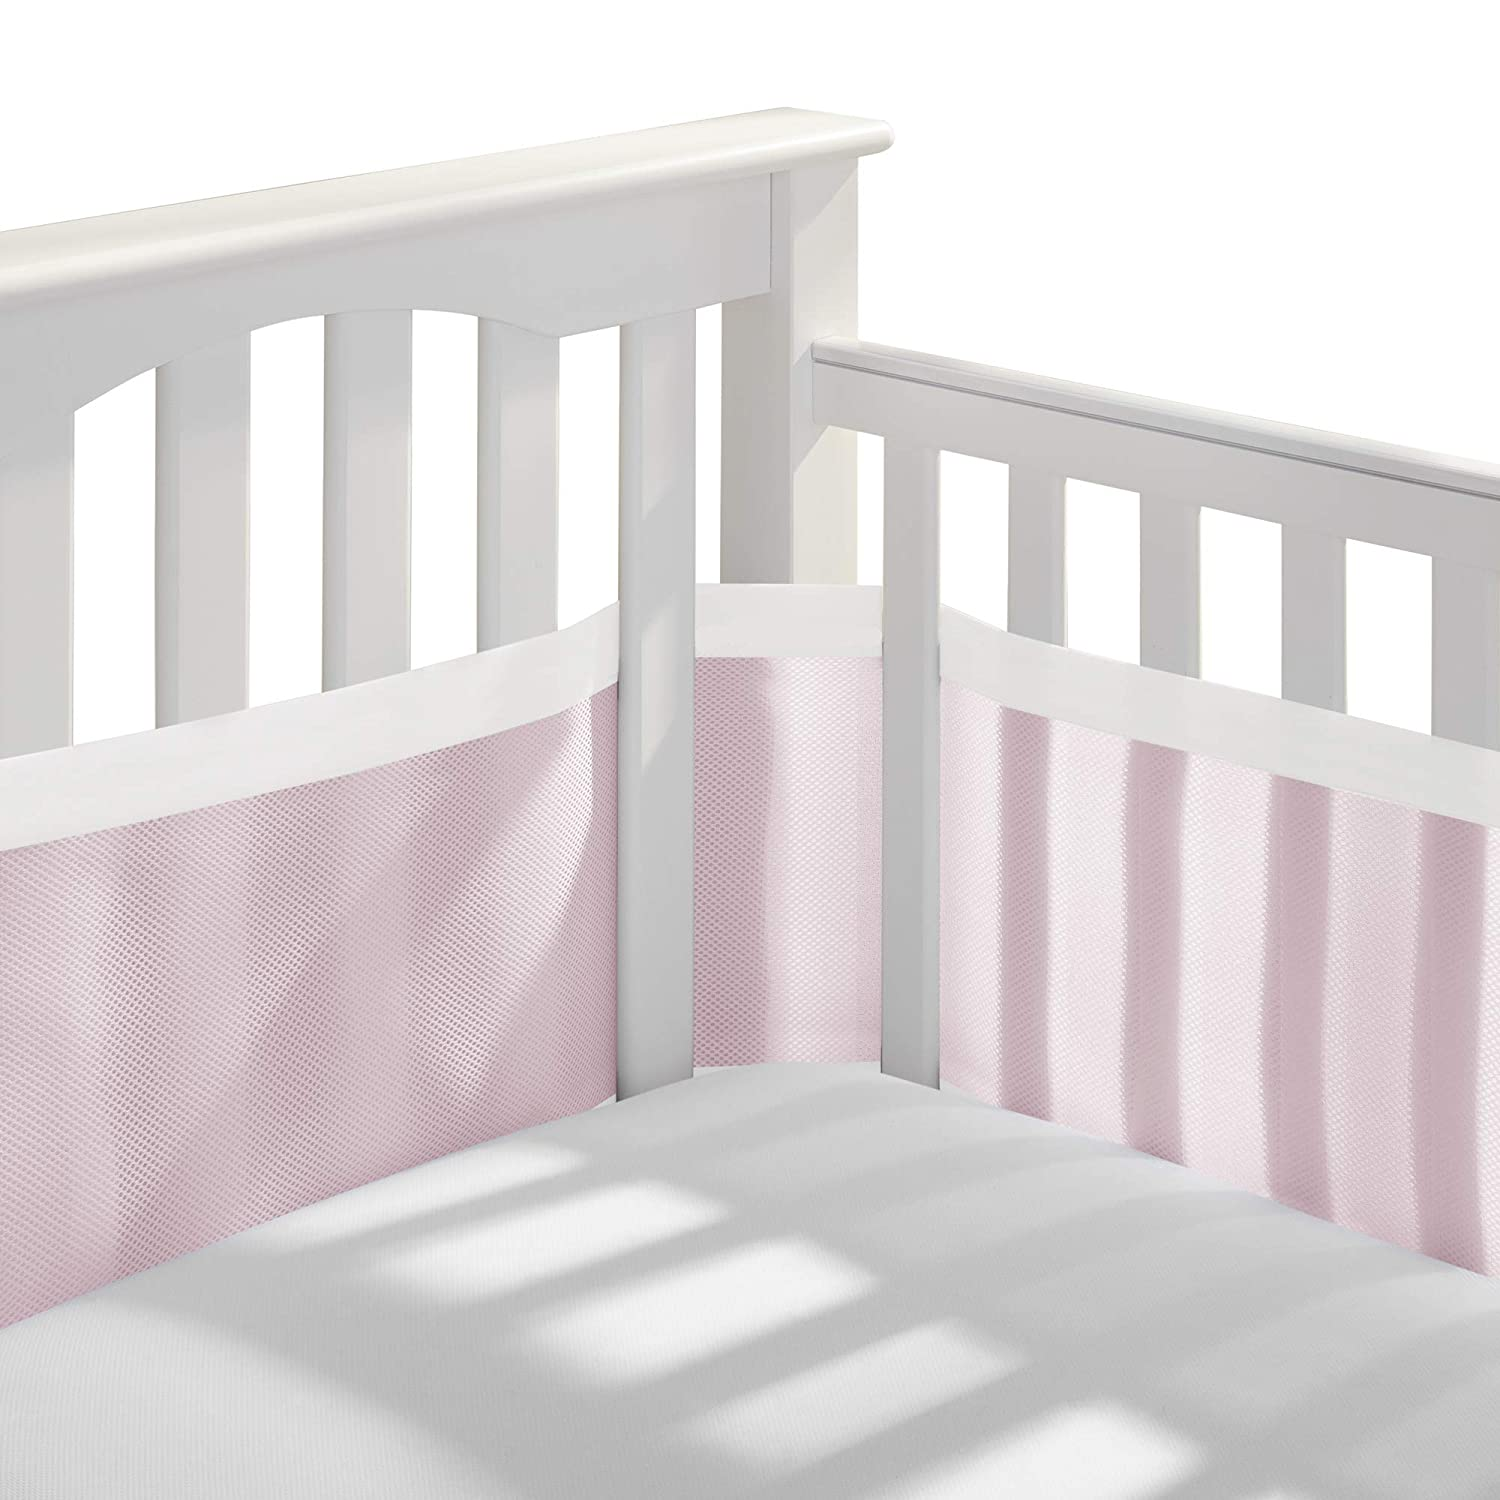 BreathableBaby | Deluxe Breathable Mesh Crib Liner | Doctor Endorsed | Helps Prevent Arms and Legs from Getting Stuck Between Crib Slats | Independently Tested for Safety | White w/Natural Linen Breathable Baby 25507